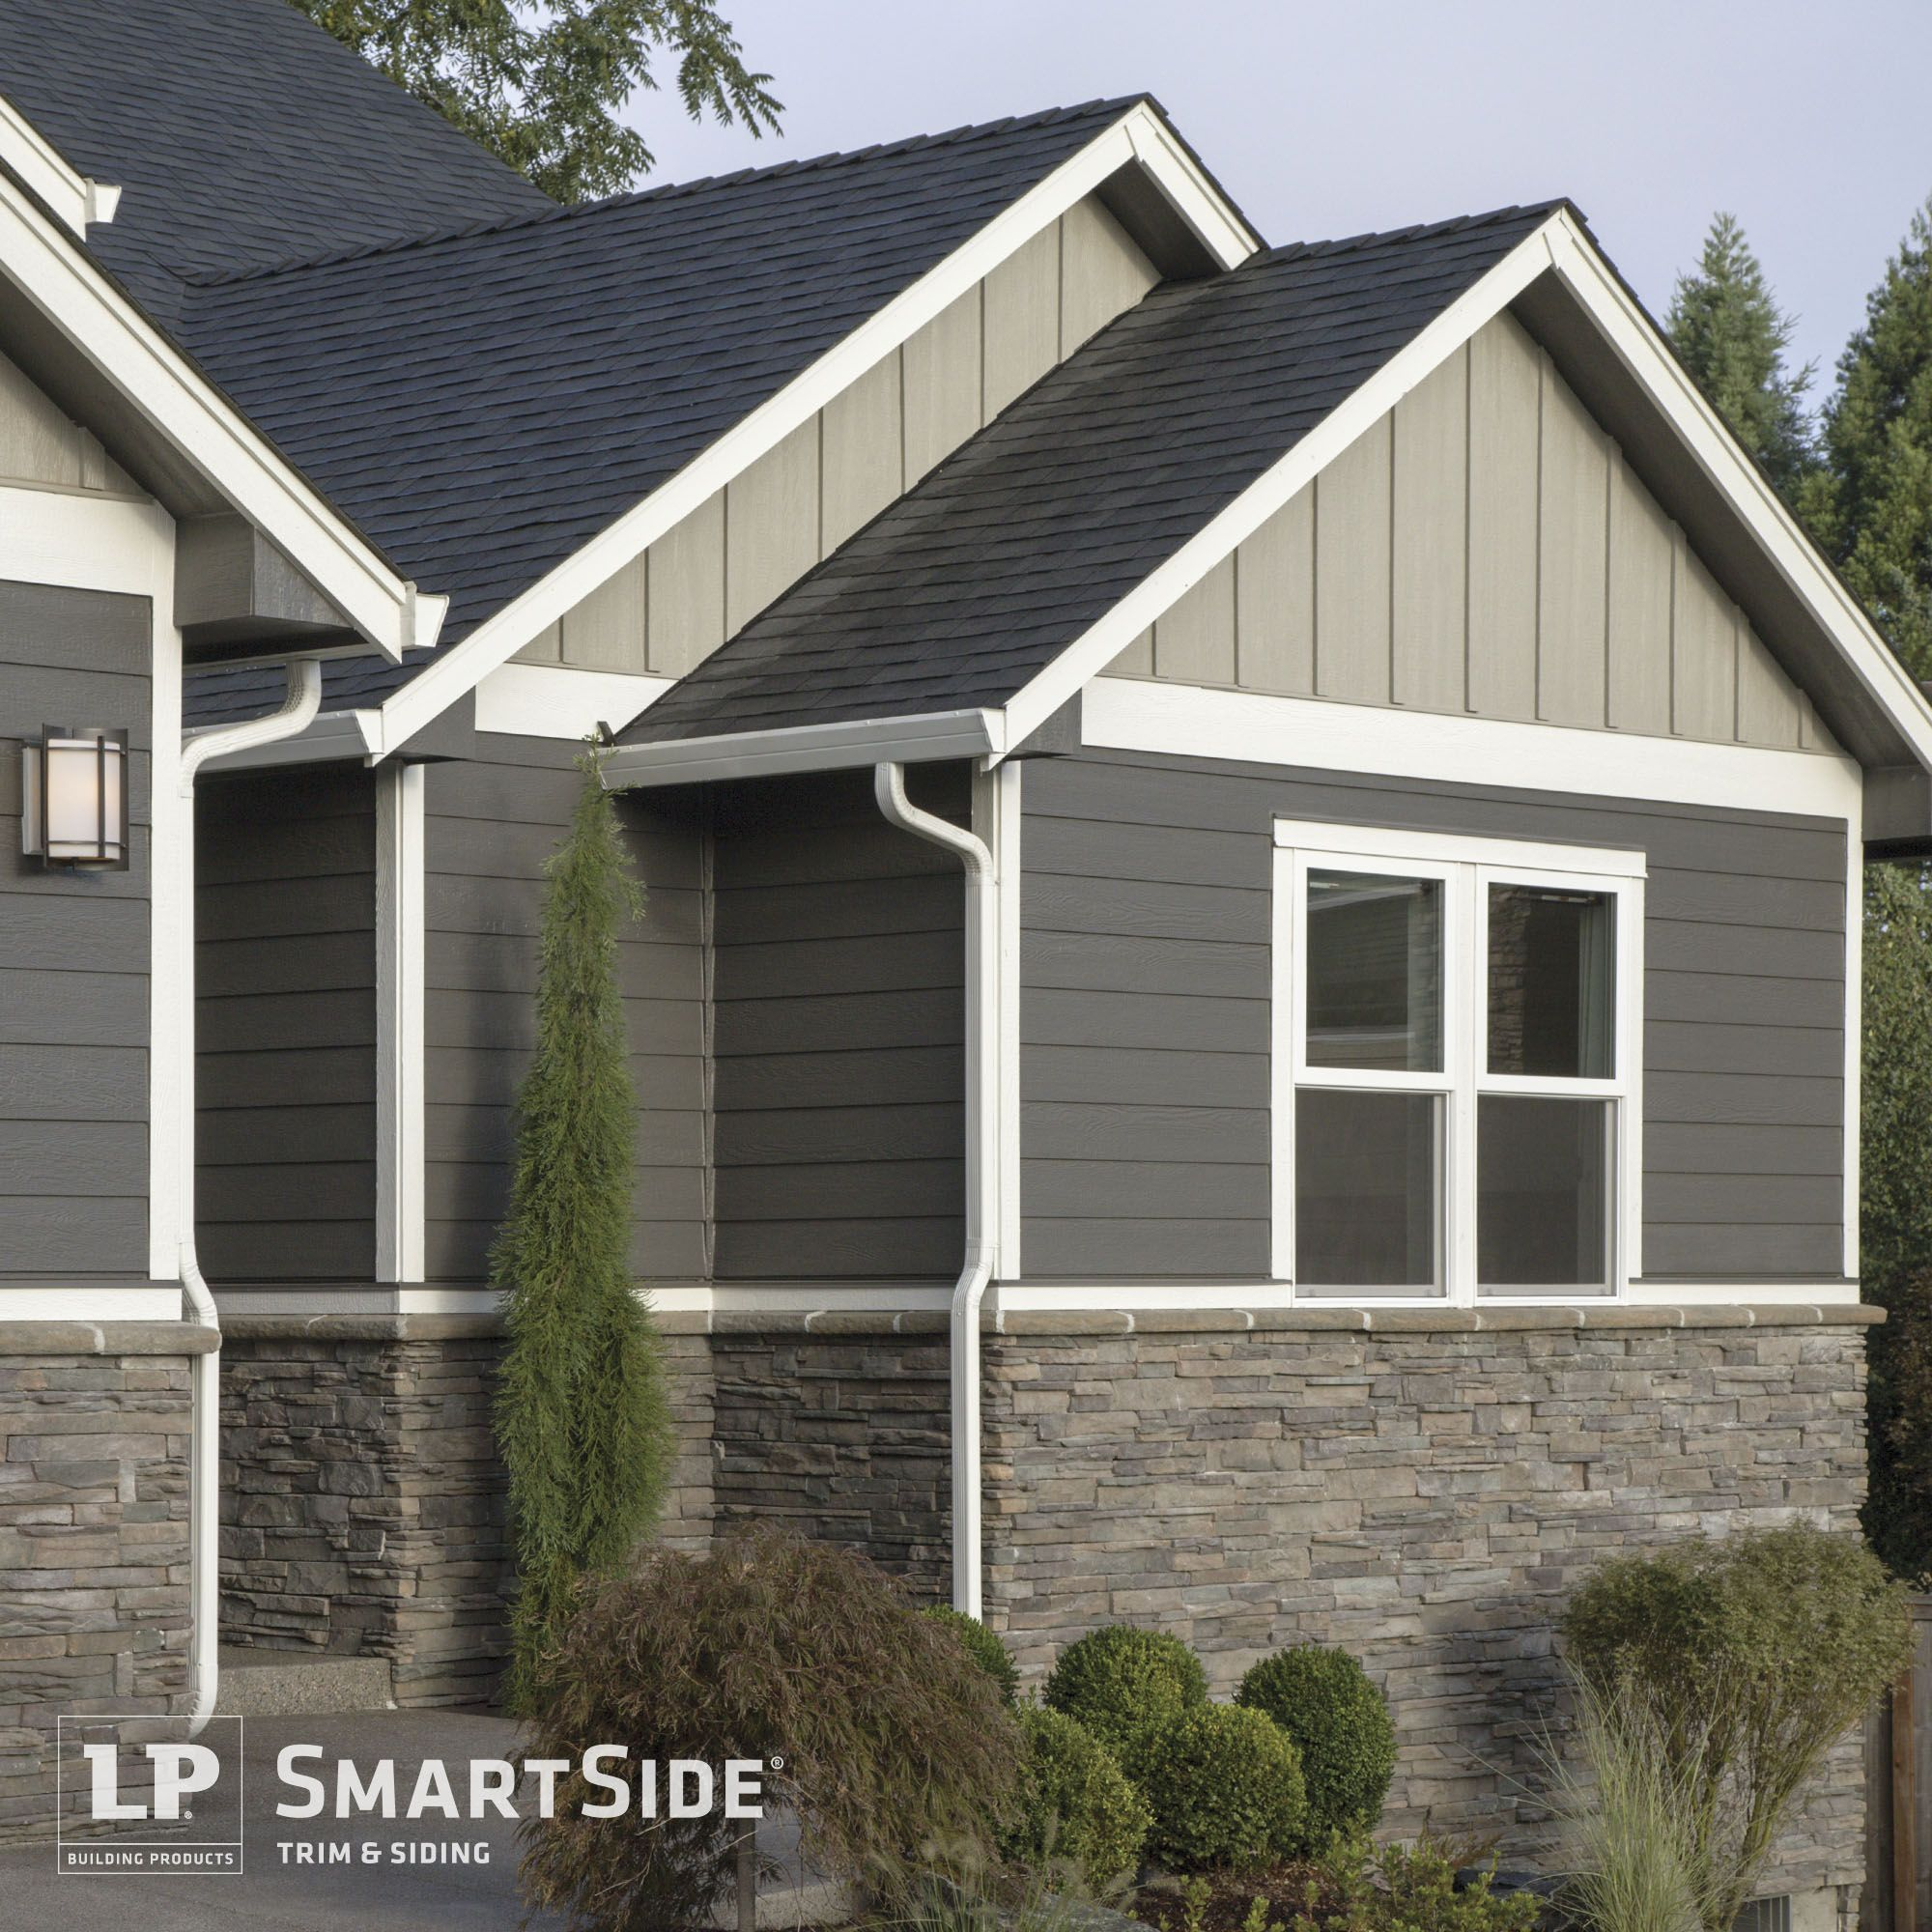 Exterior Siding Design: LP SmartSide Trim, Lap And Panel Siding Pair With